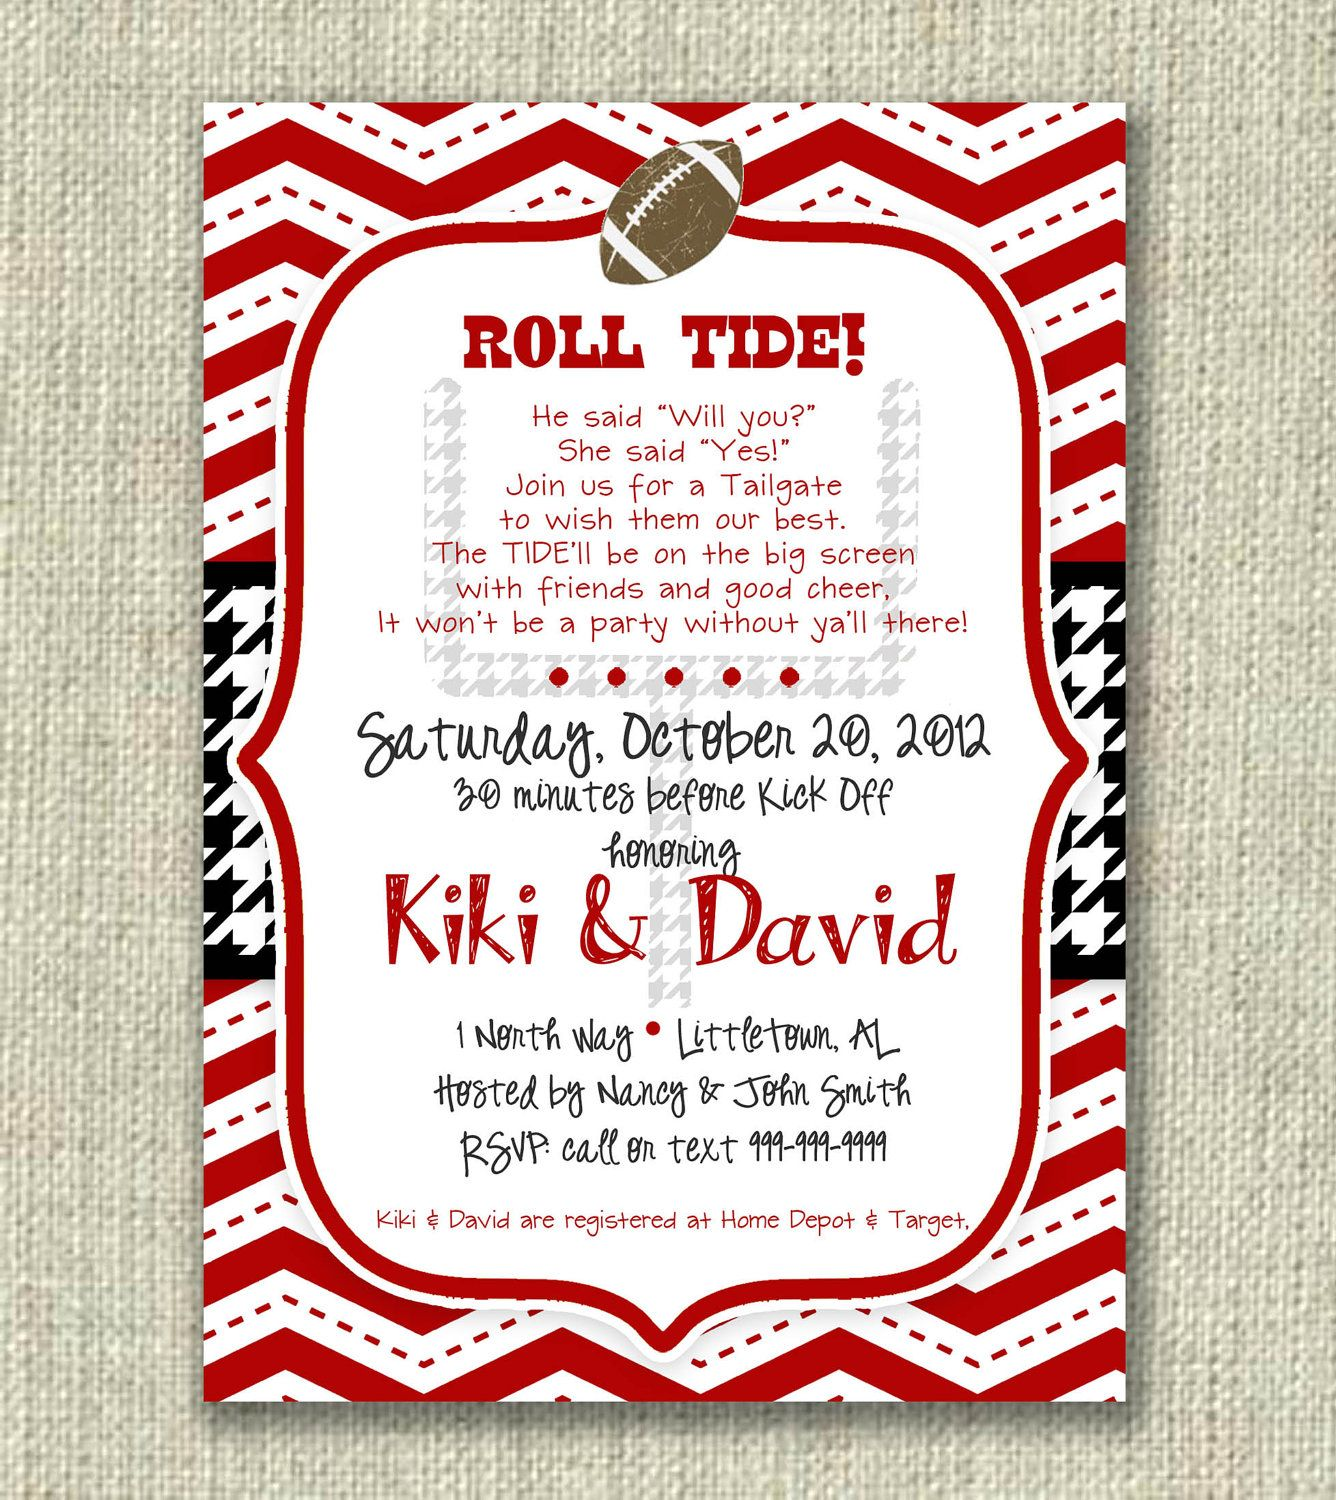 Bridal Shower Football Invitation Tailgate Alabama Crimson